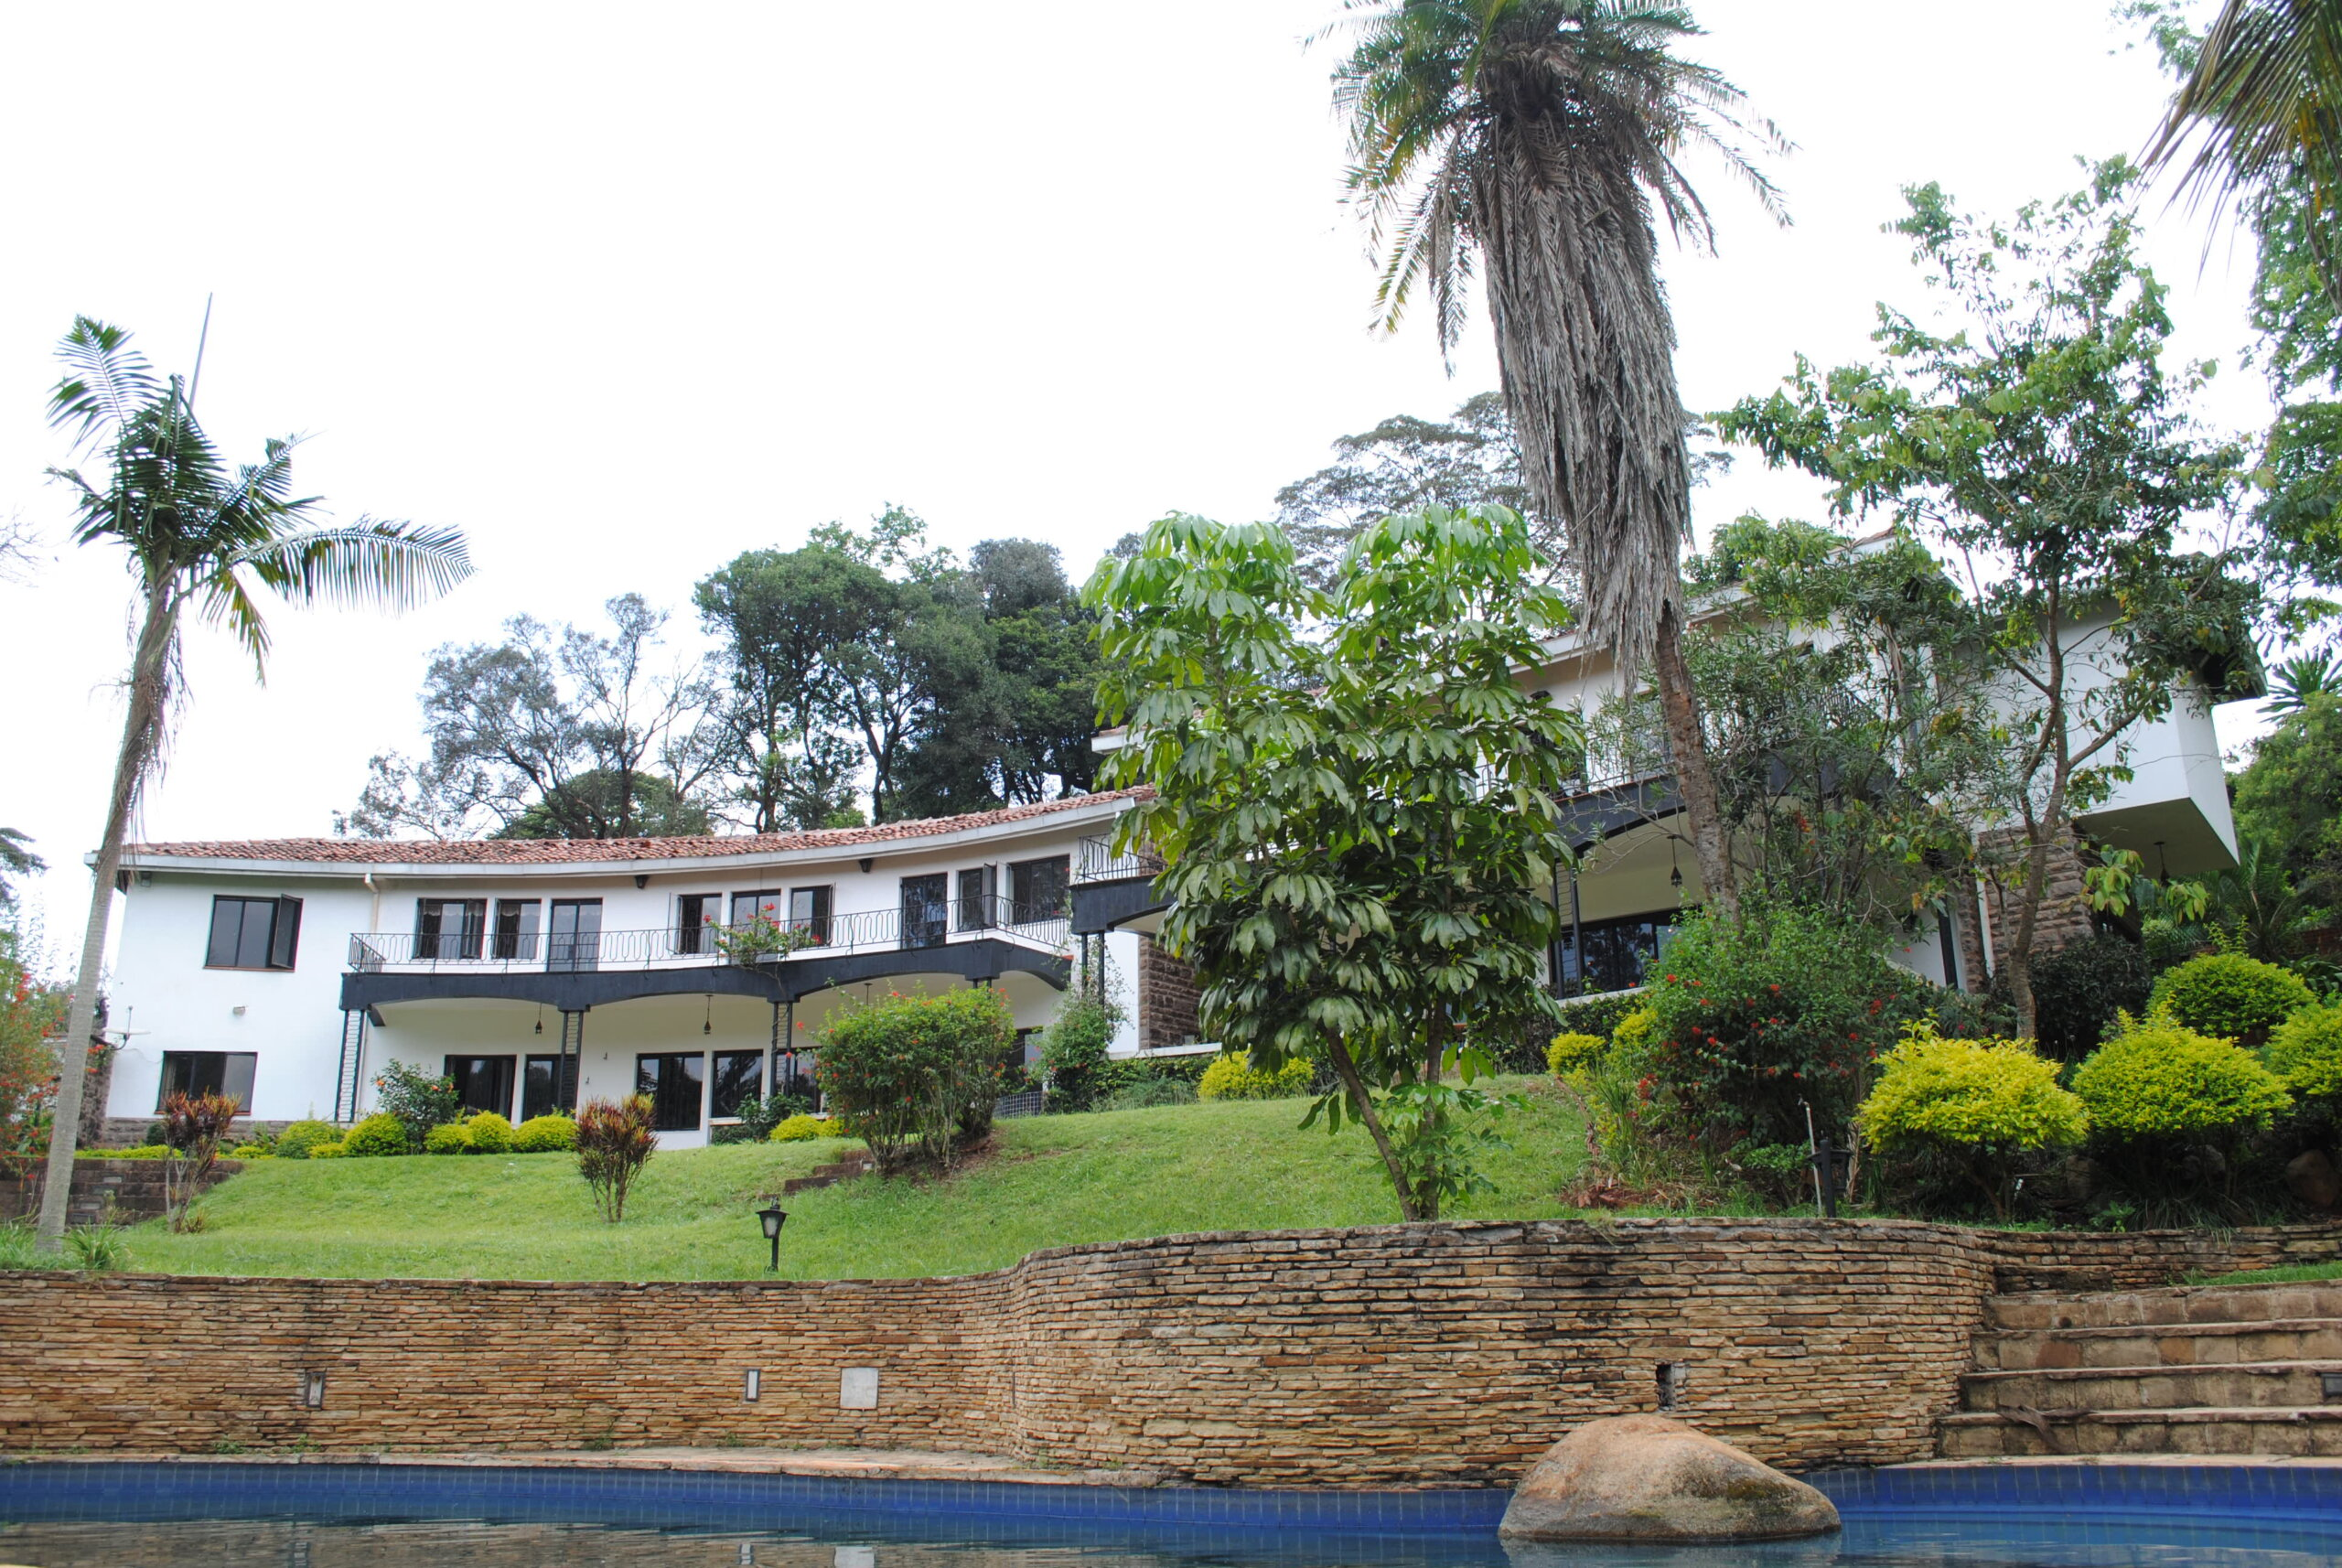 4 Bedrooms Ambassadorial House in Old Muthaiga